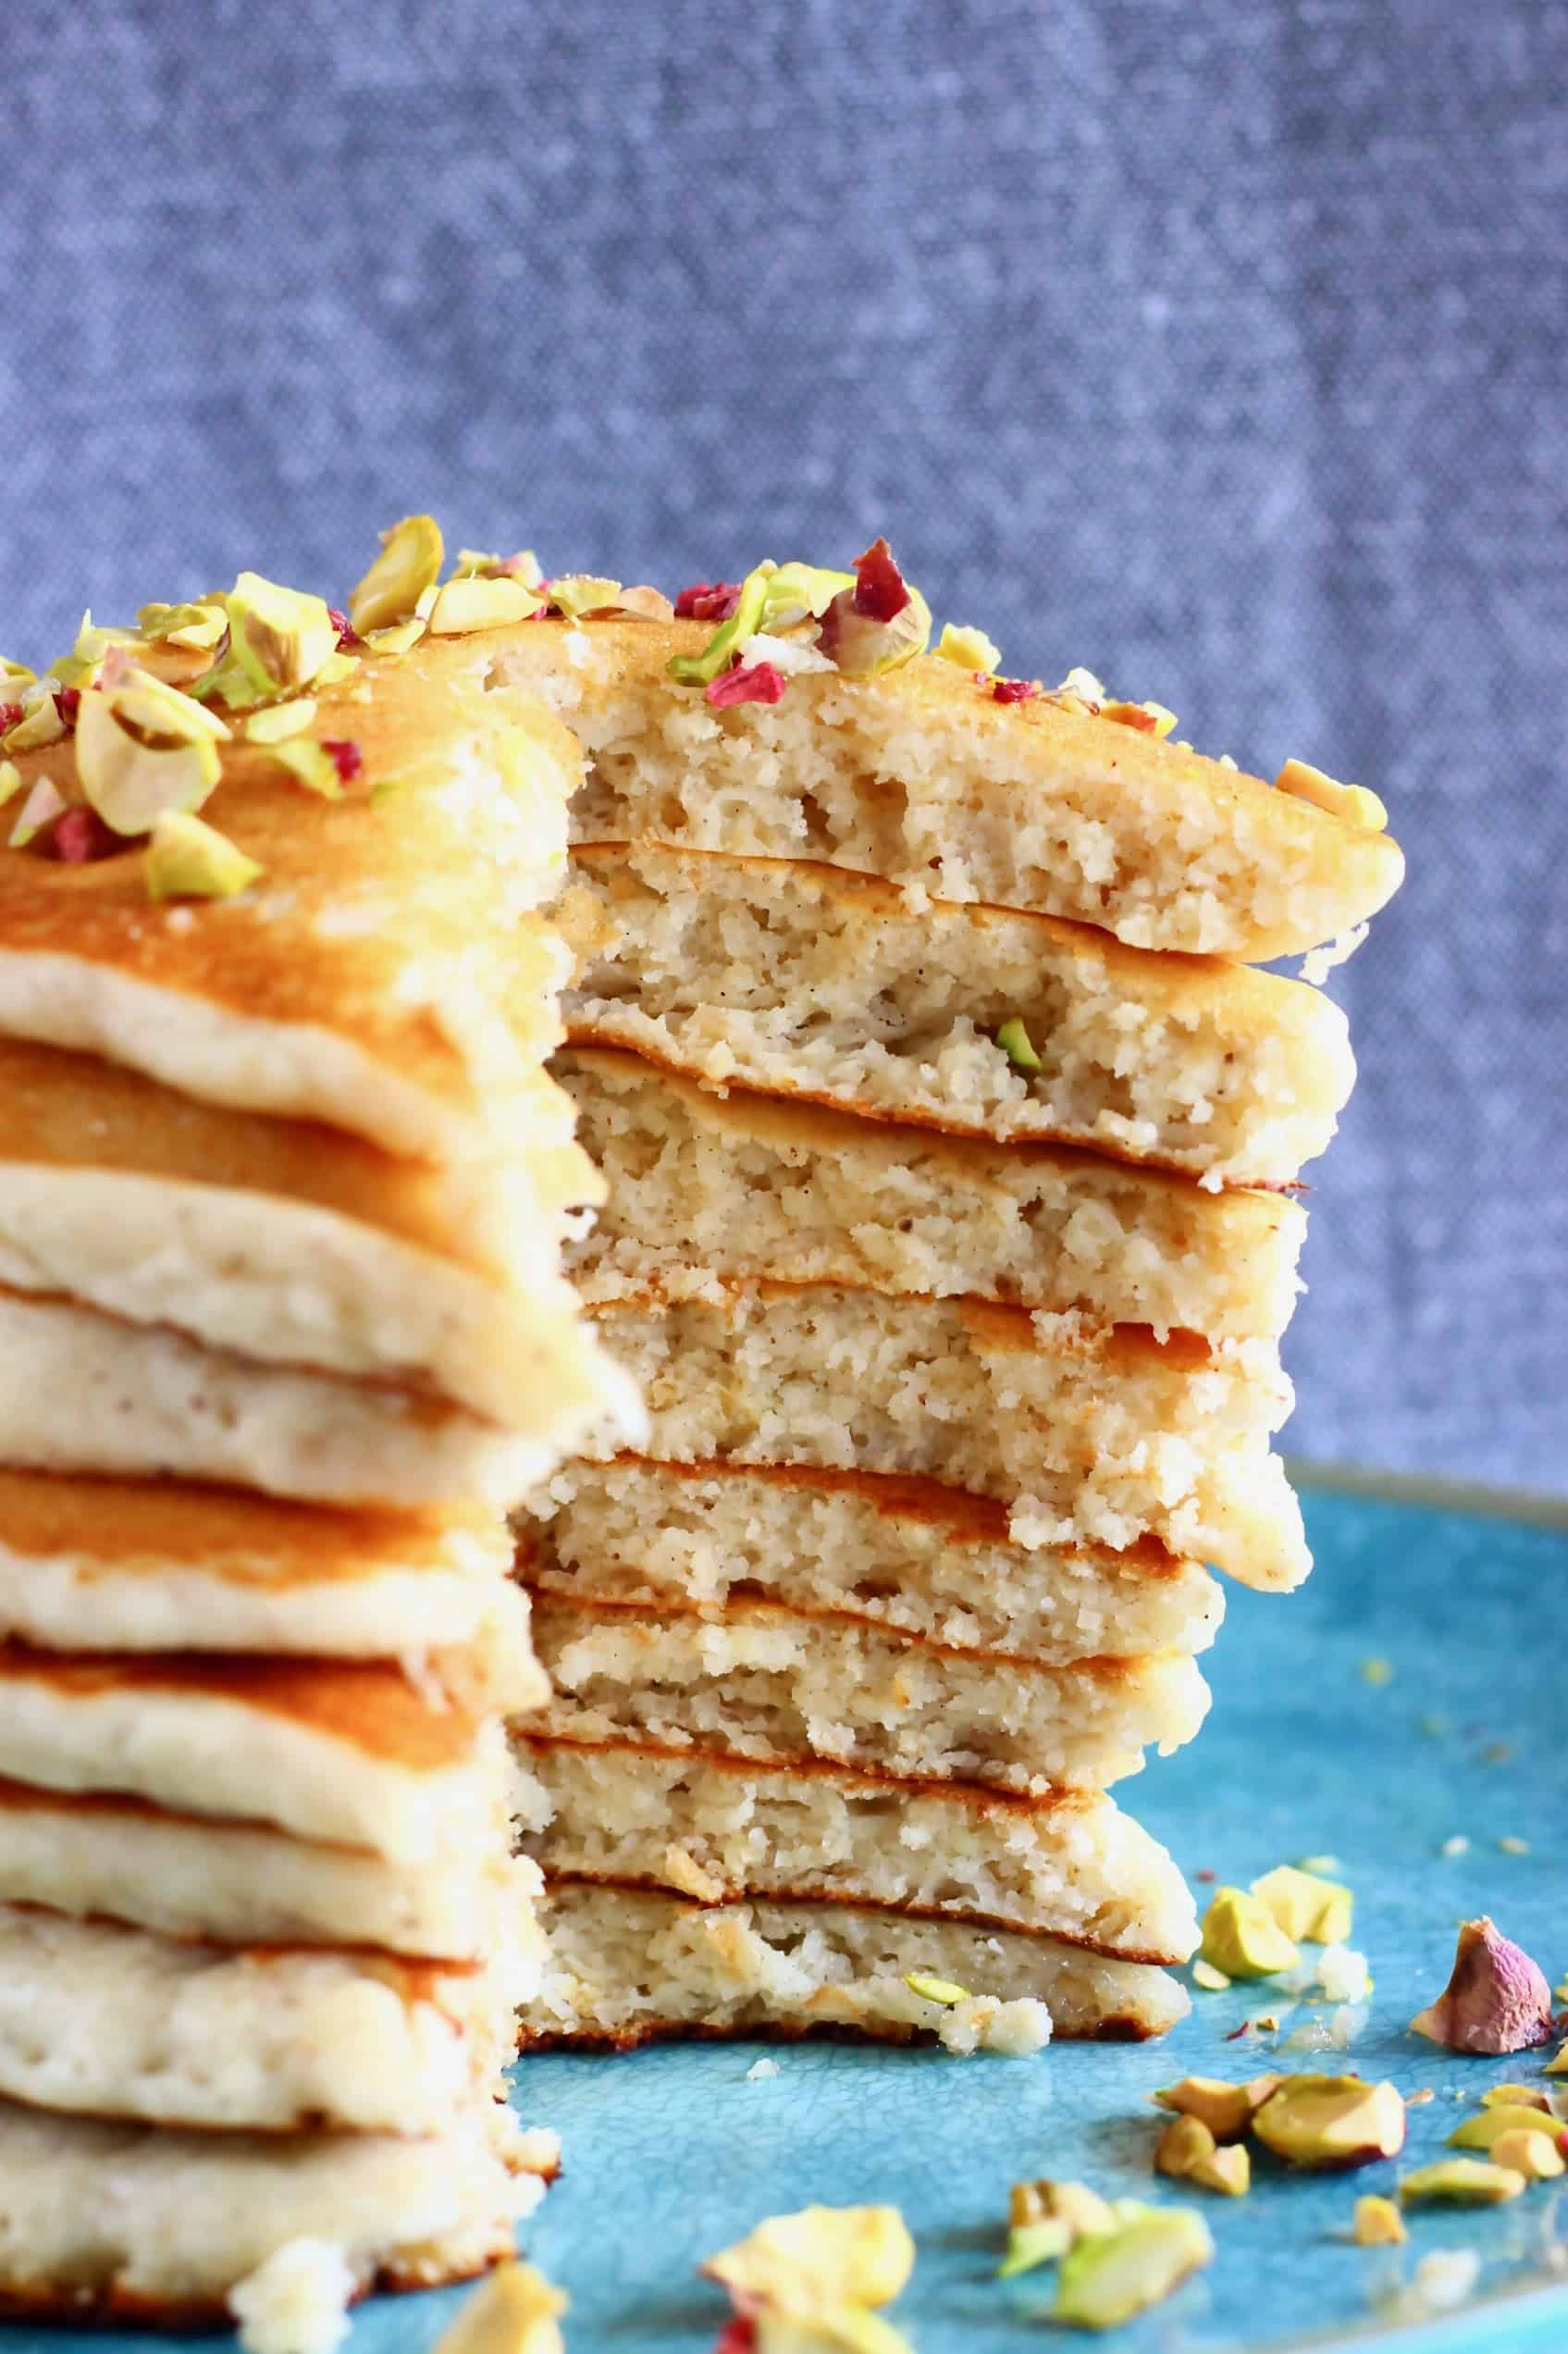 A stack of sliced gluten-free vegan oatmeal pancakes on a plate topped with chopped pistachios